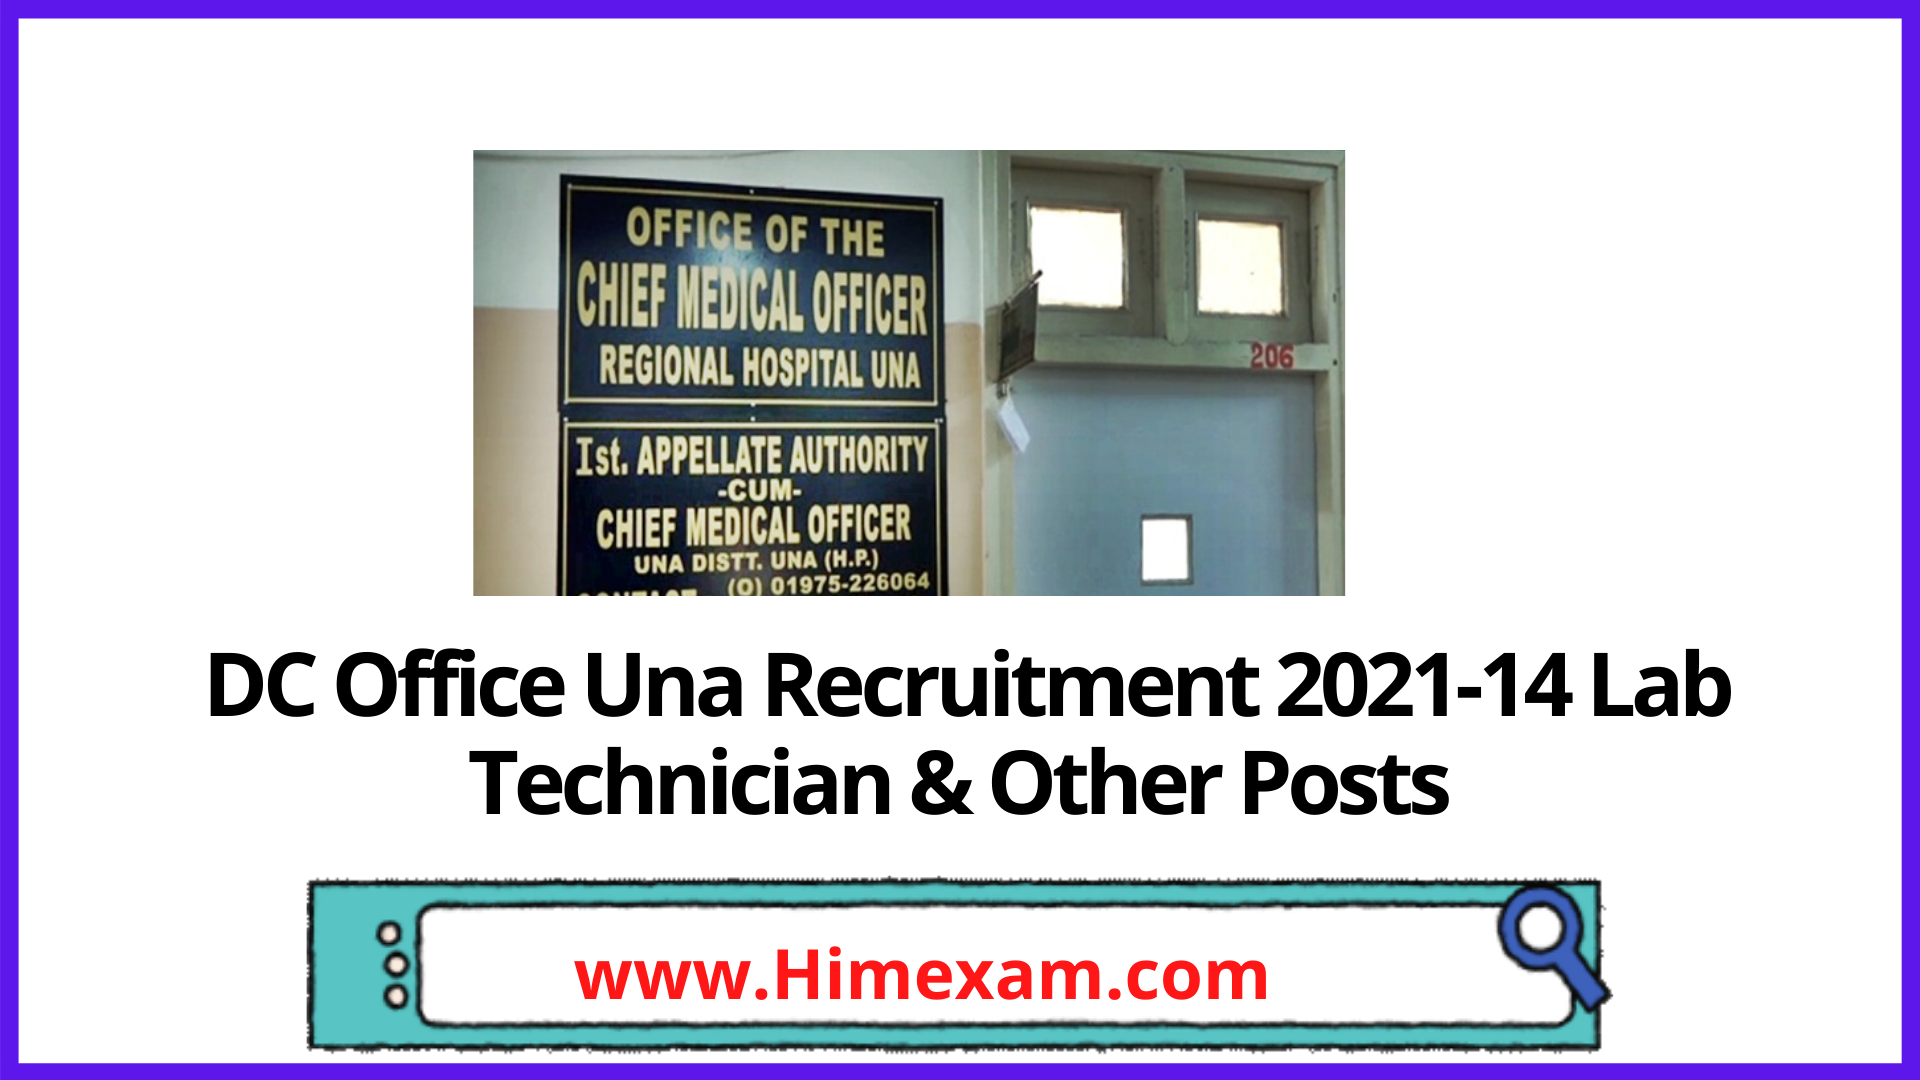 DC Office Una Recruitment 2021-14 Lab Technician & Other Posts